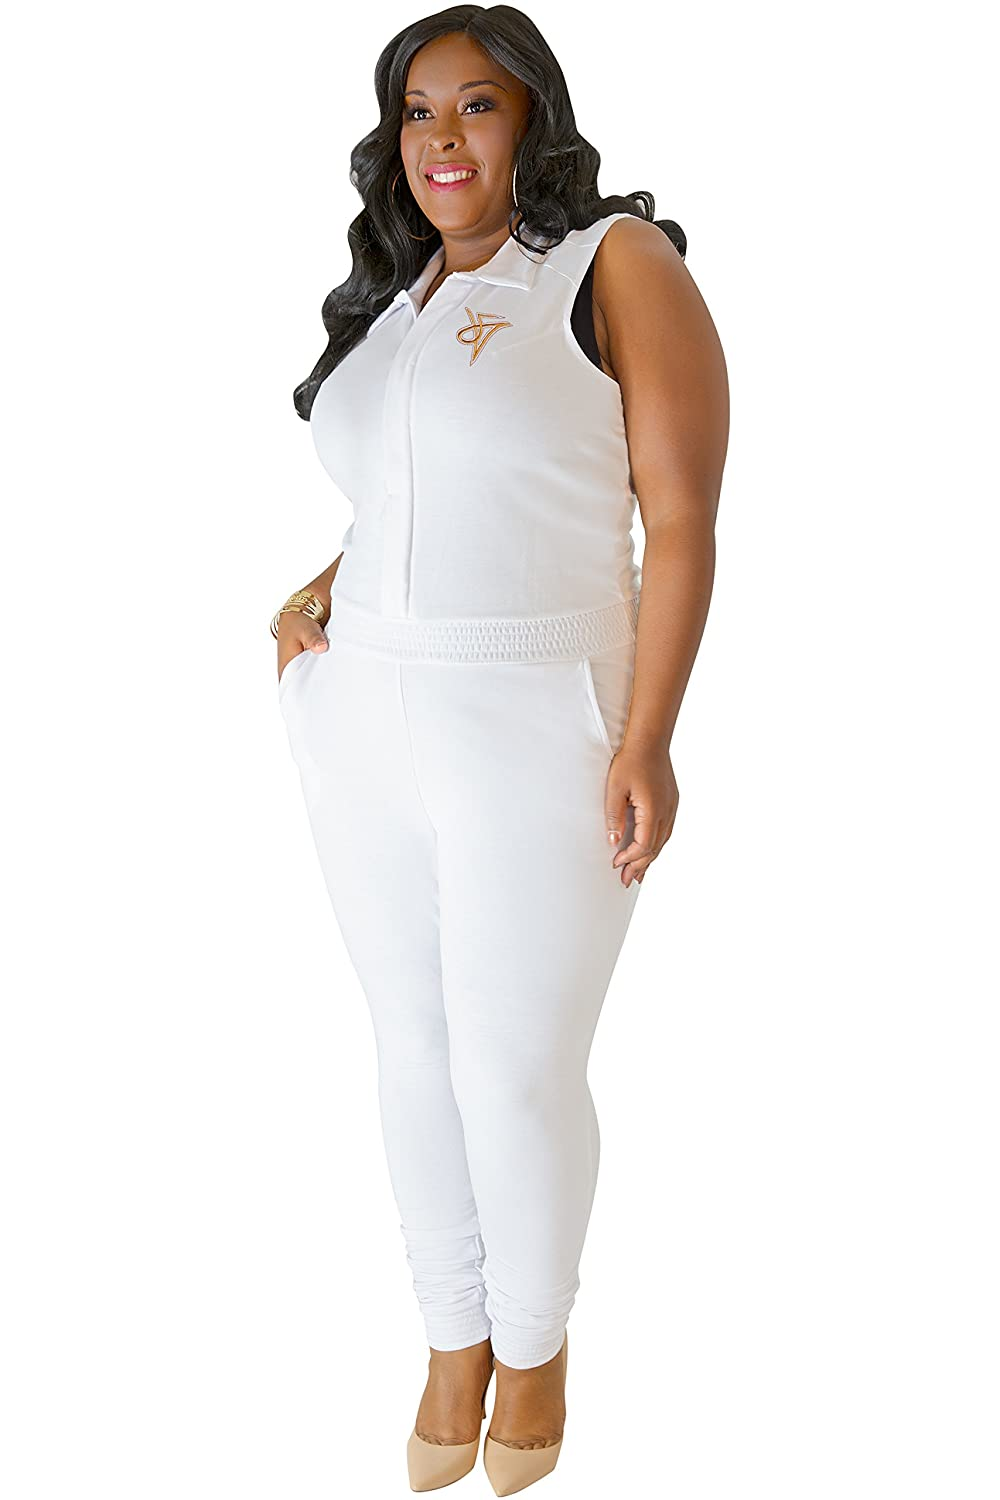 d434de037b2 Amazon.com  Poetic Justice Plus Size Curvy Womens White Sleeveless Stretch  Collared Jumpsuit  Clothing